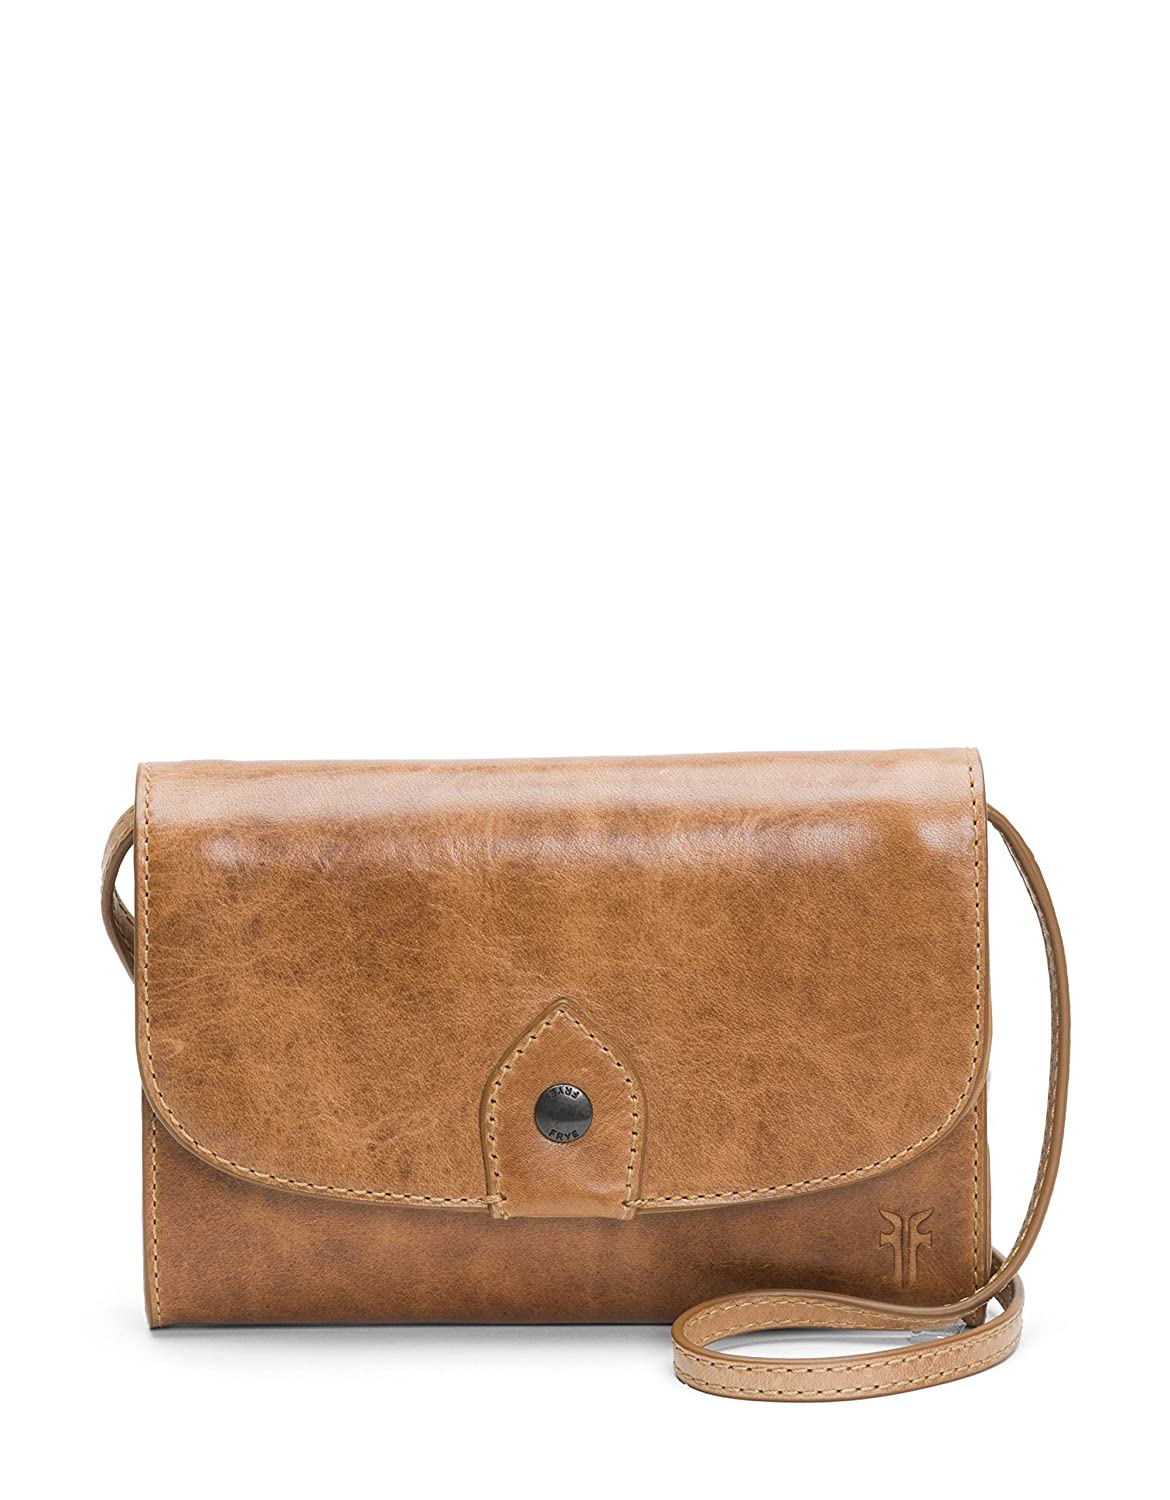 Beige FRYE Melissa Wallet Crossbody Clutch Leather Bag